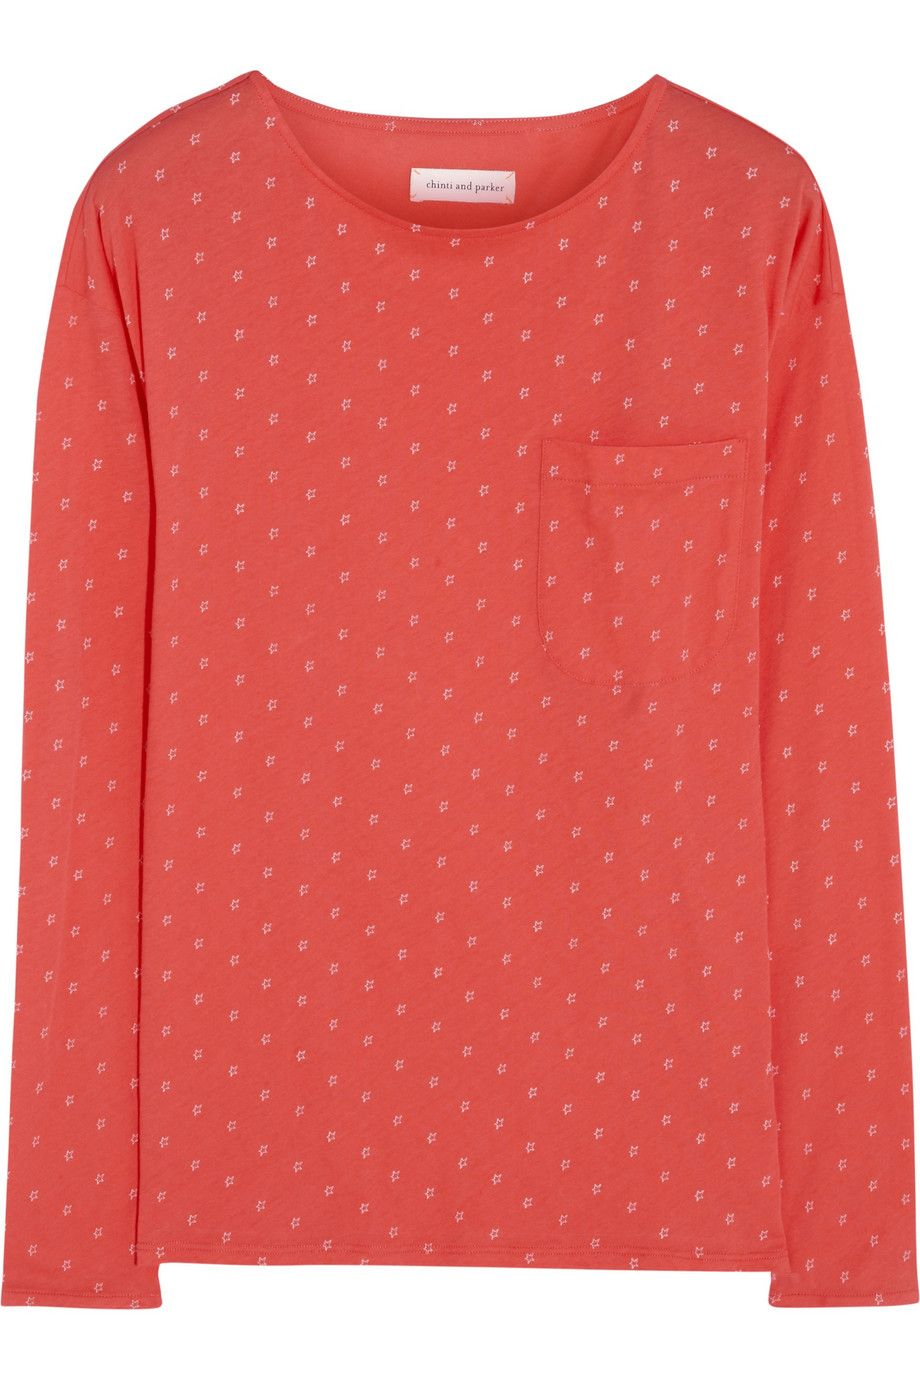 Chinti and ParkerStar-print organic cotton top